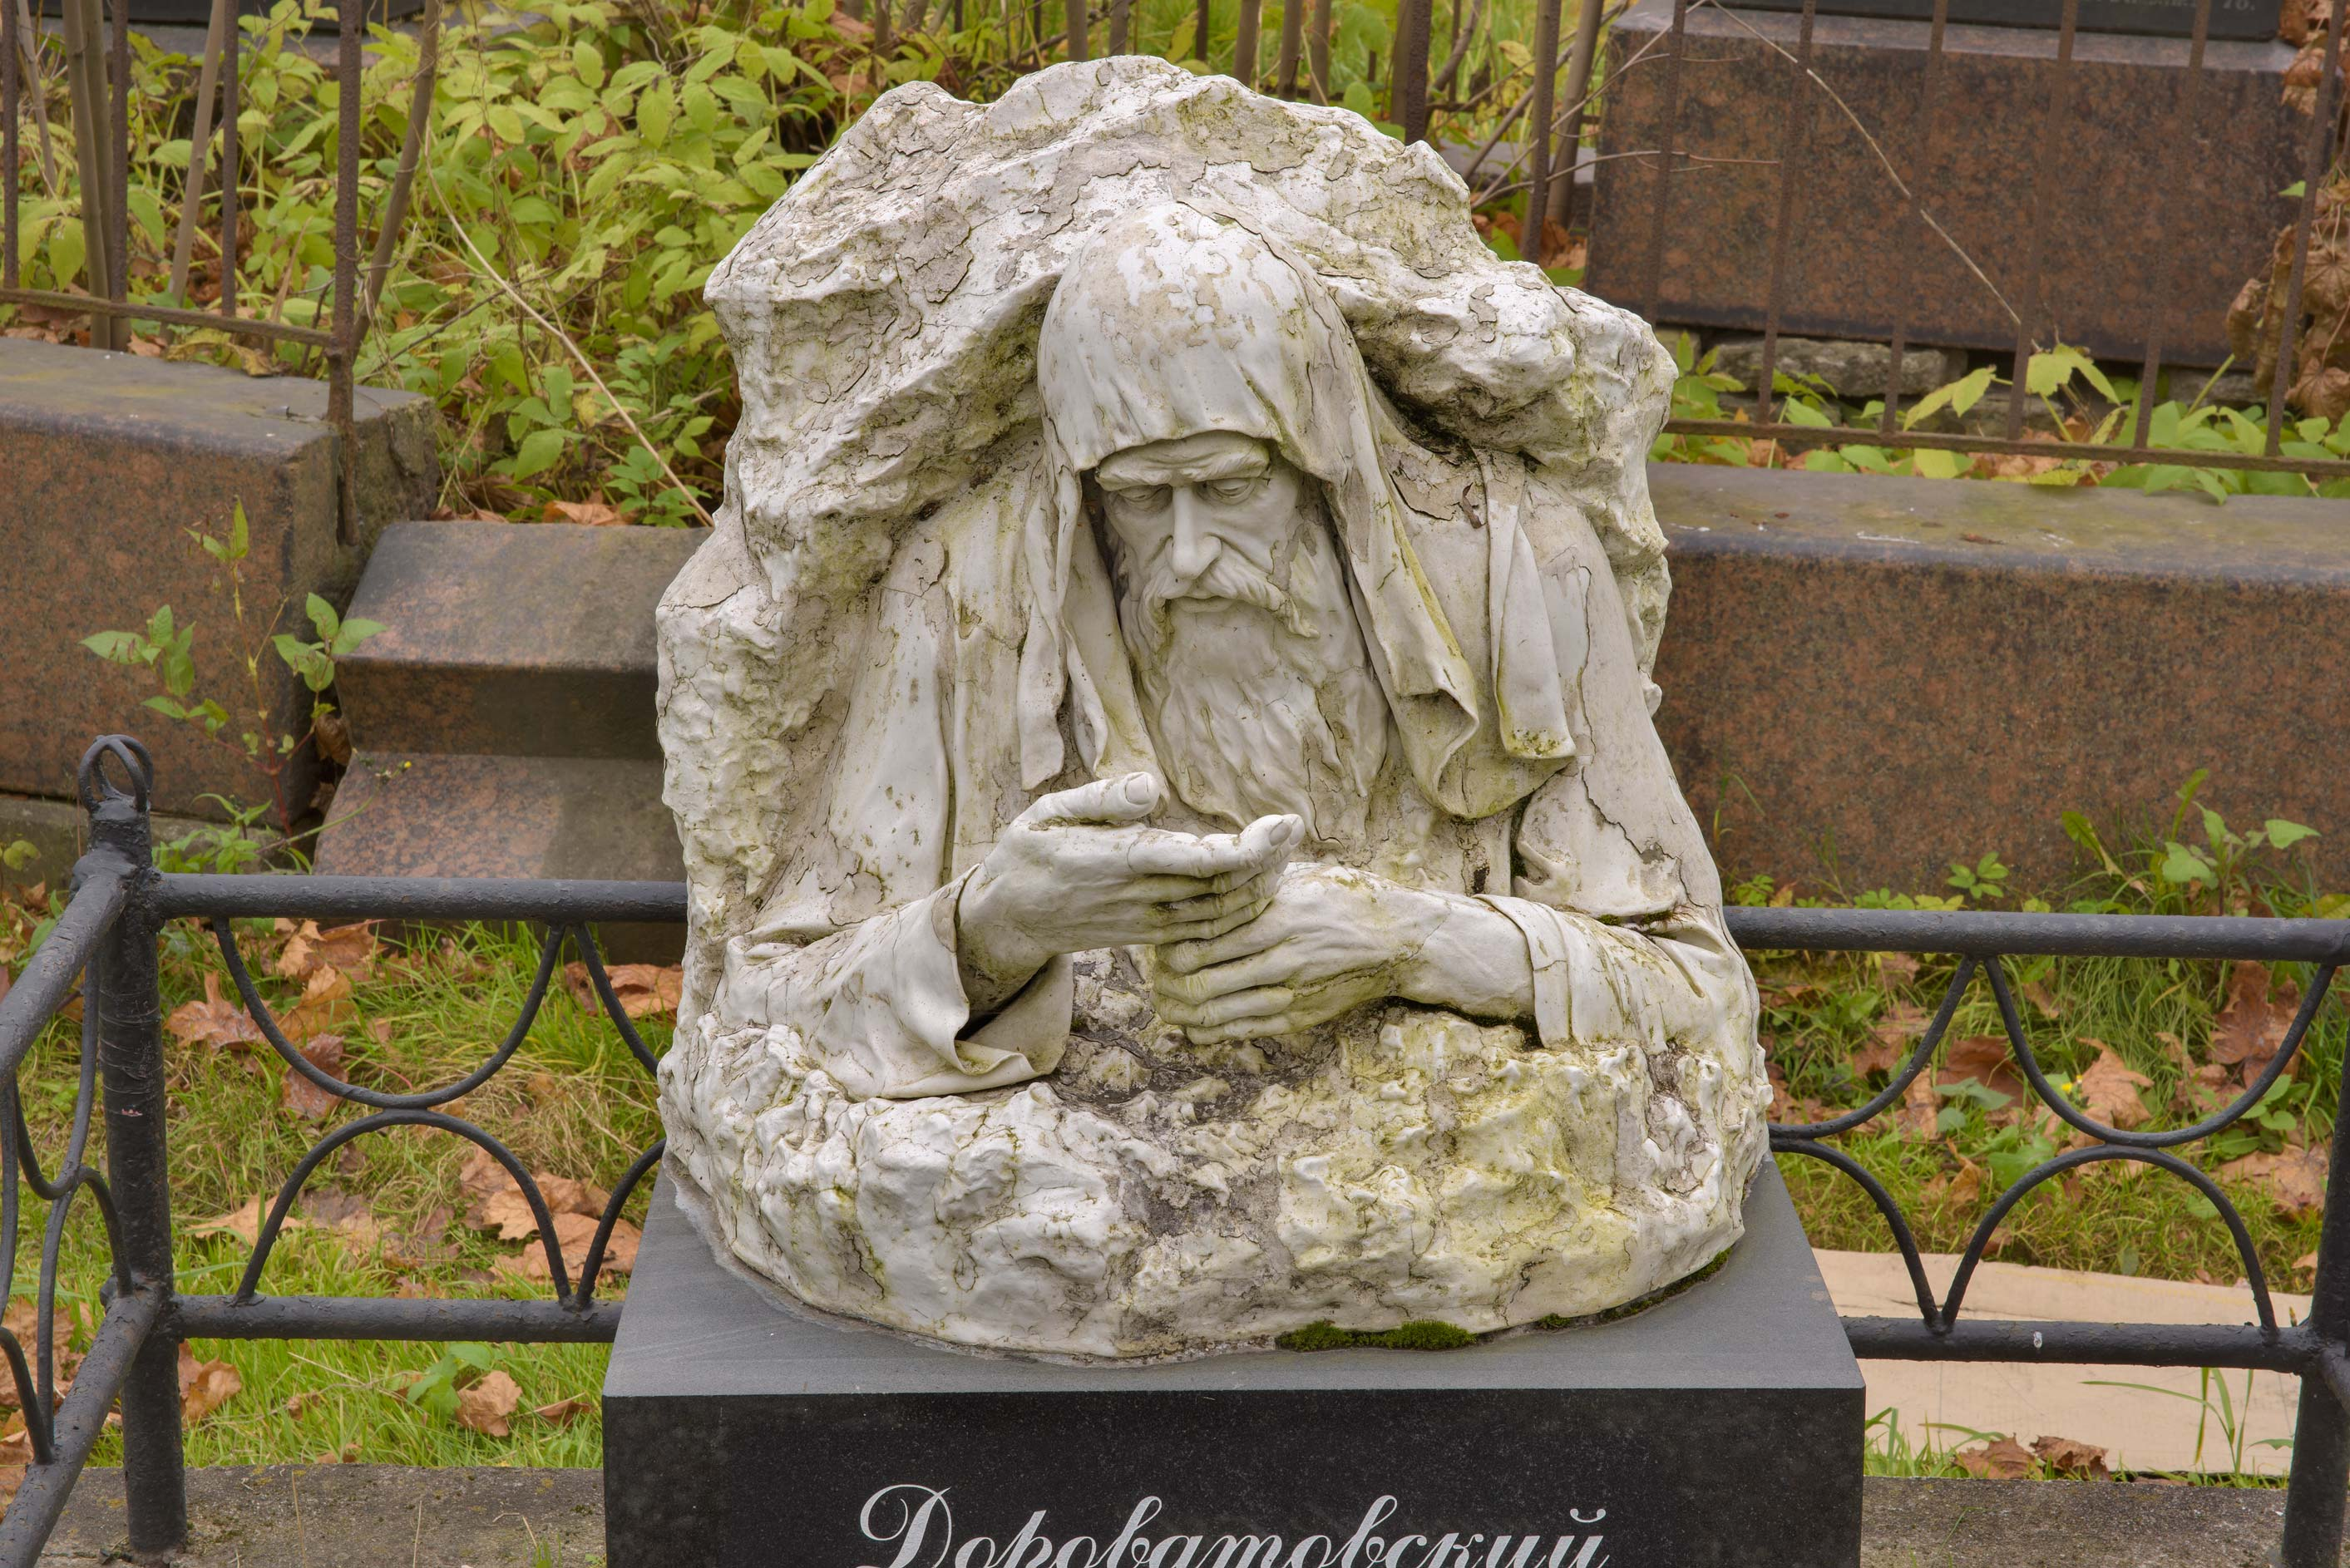 Marble sculture on a tomb of Dorovatovskiy in...Nevsky Lavra. St.Petersburg, Russia